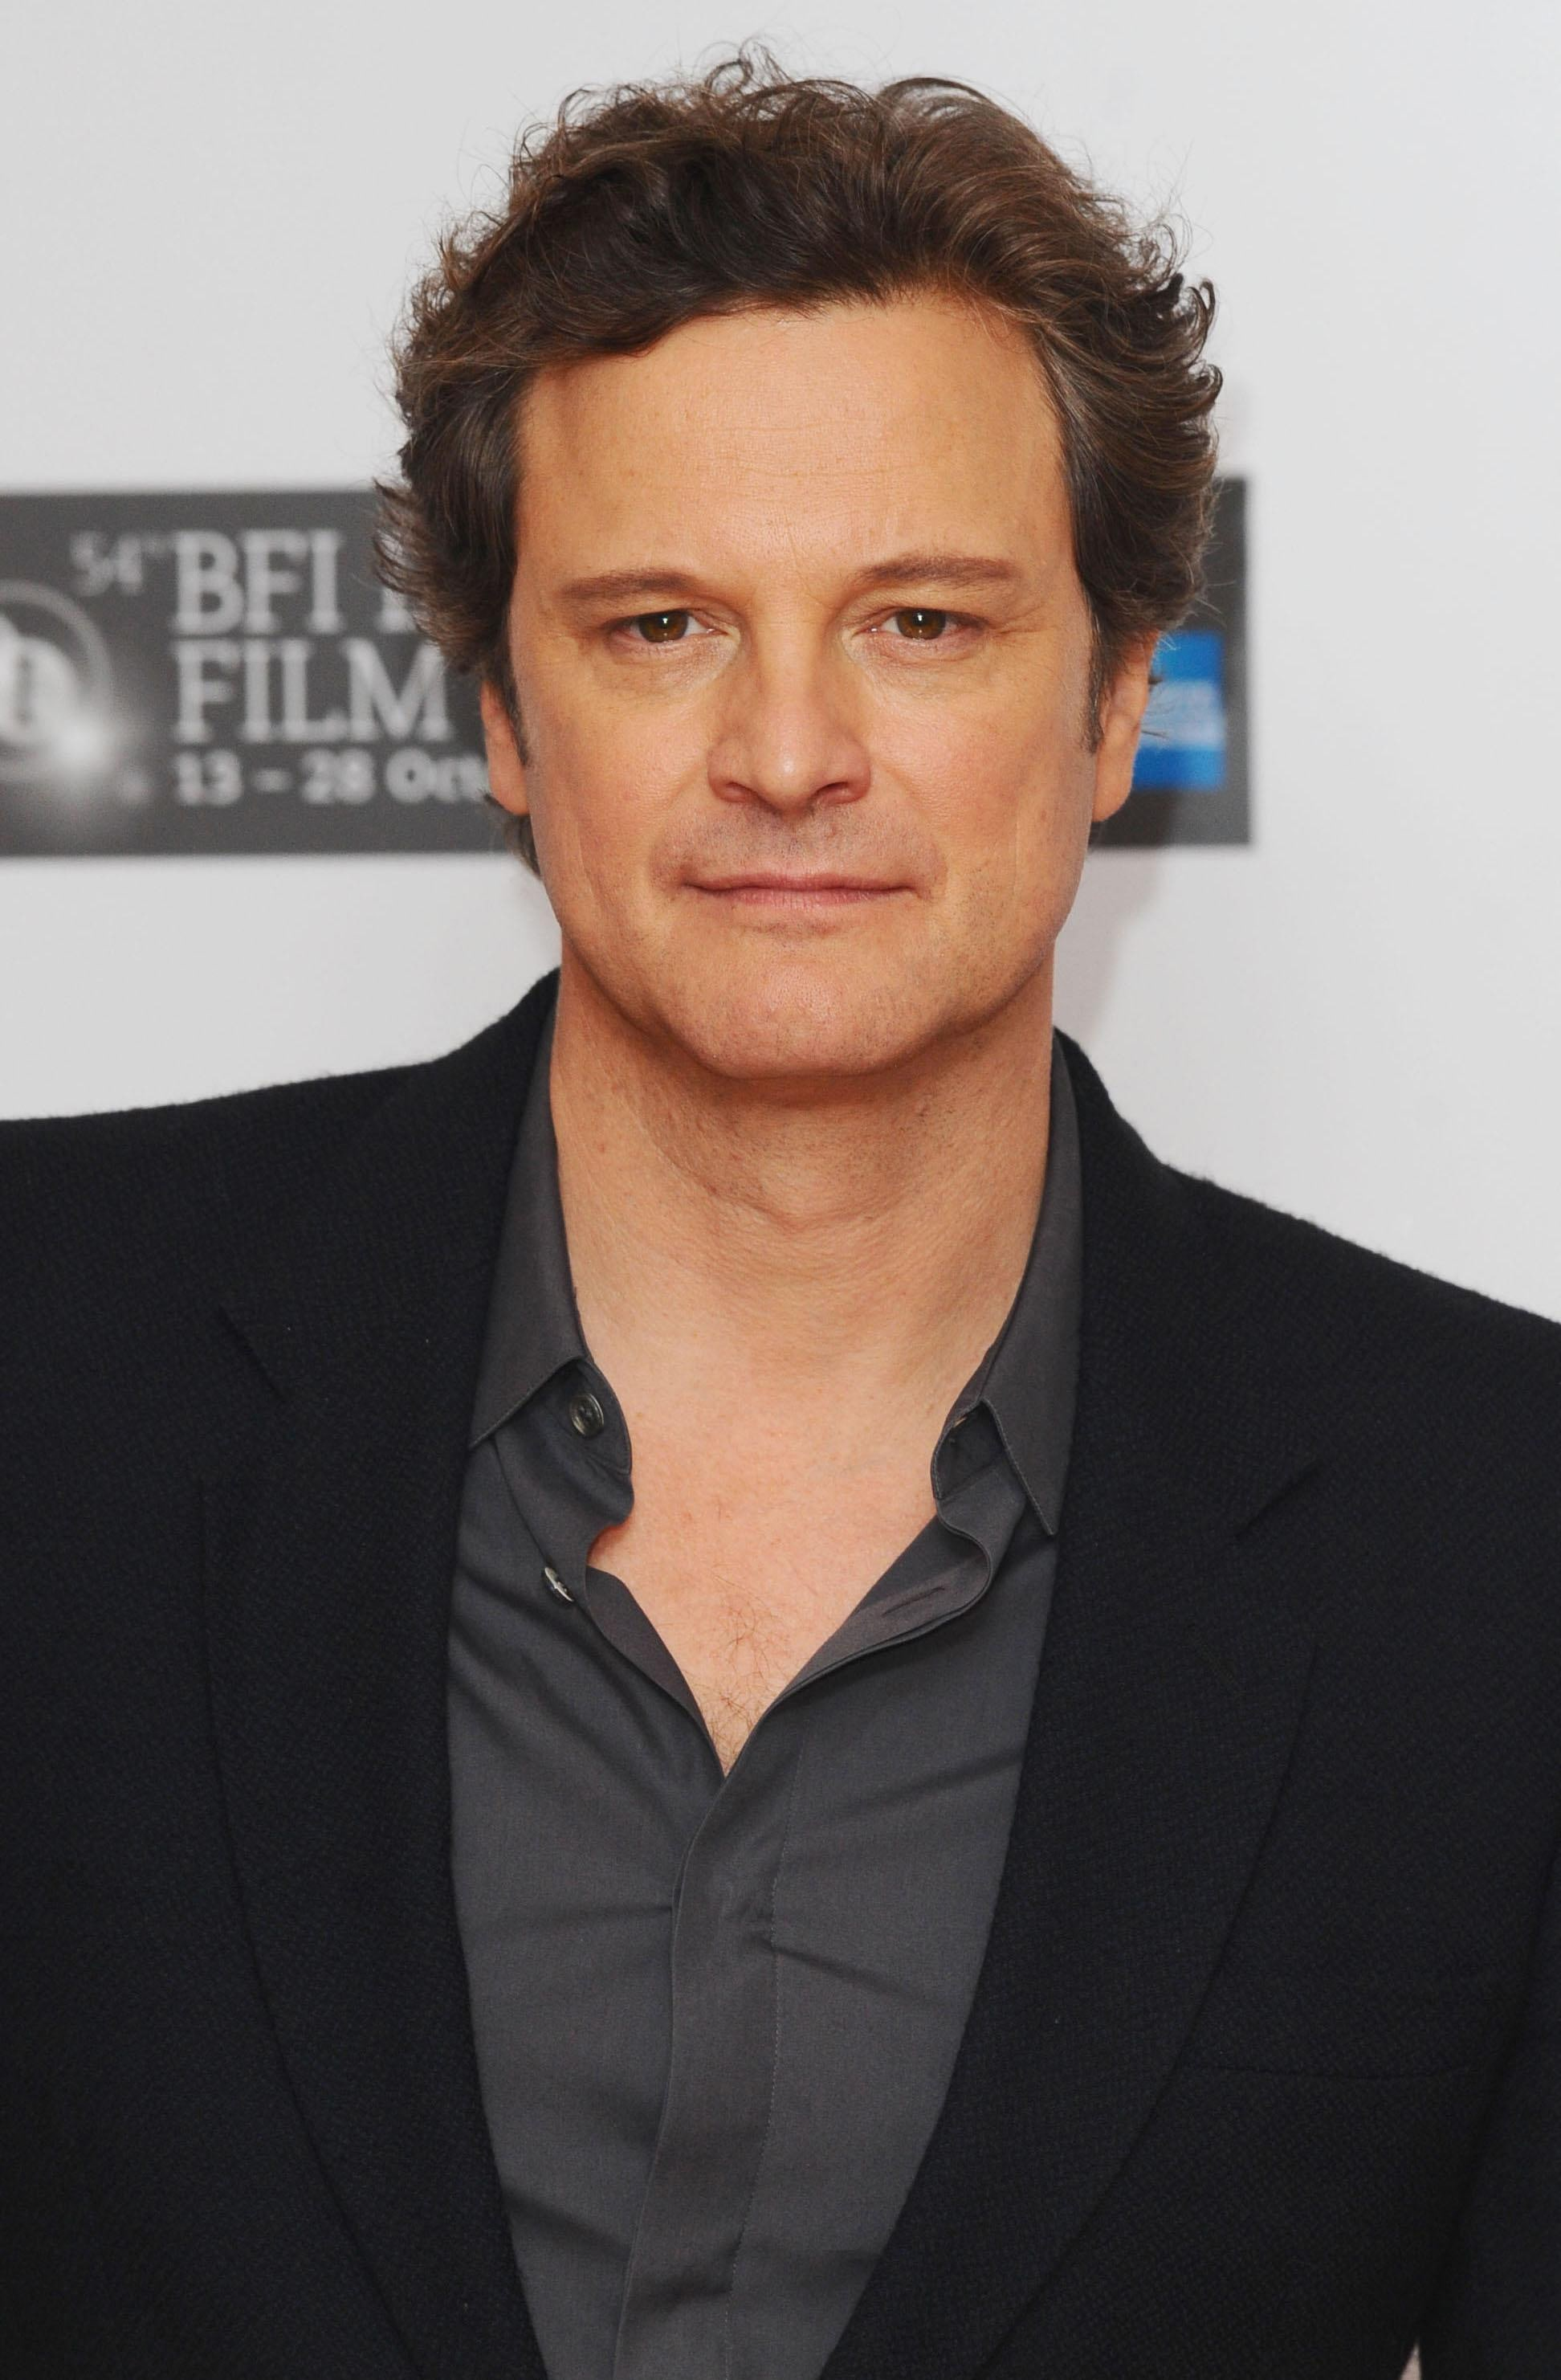 Colin Firth Backgrounds